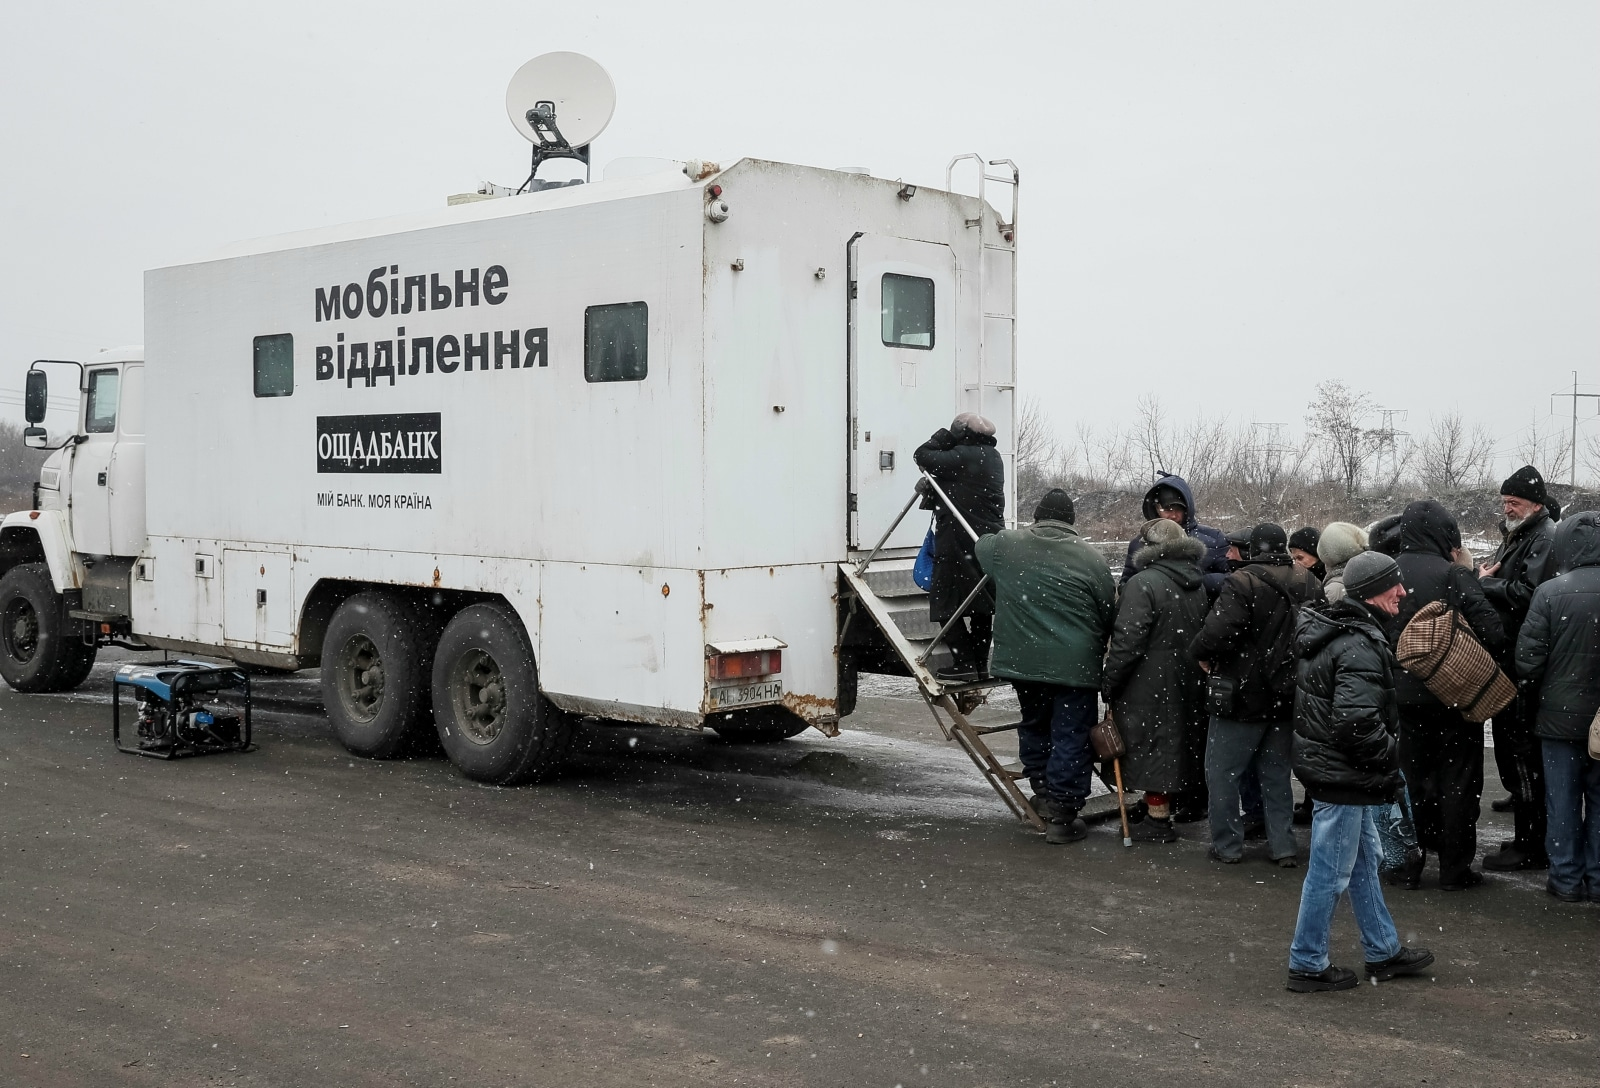 Local residents stand in line to an ATM located in an armoured truck after crossing the contact line between pro-Russian rebels and Ukrainian troops near the front line in Mayorsk, Ukraine, February 25, 2019. Employees from the state-run Oschadbank travel by armoured truck to a nearby checkpoint, to allow residents on both sides of the conflict to withdraw money. REUTERS/Gleb Garanich